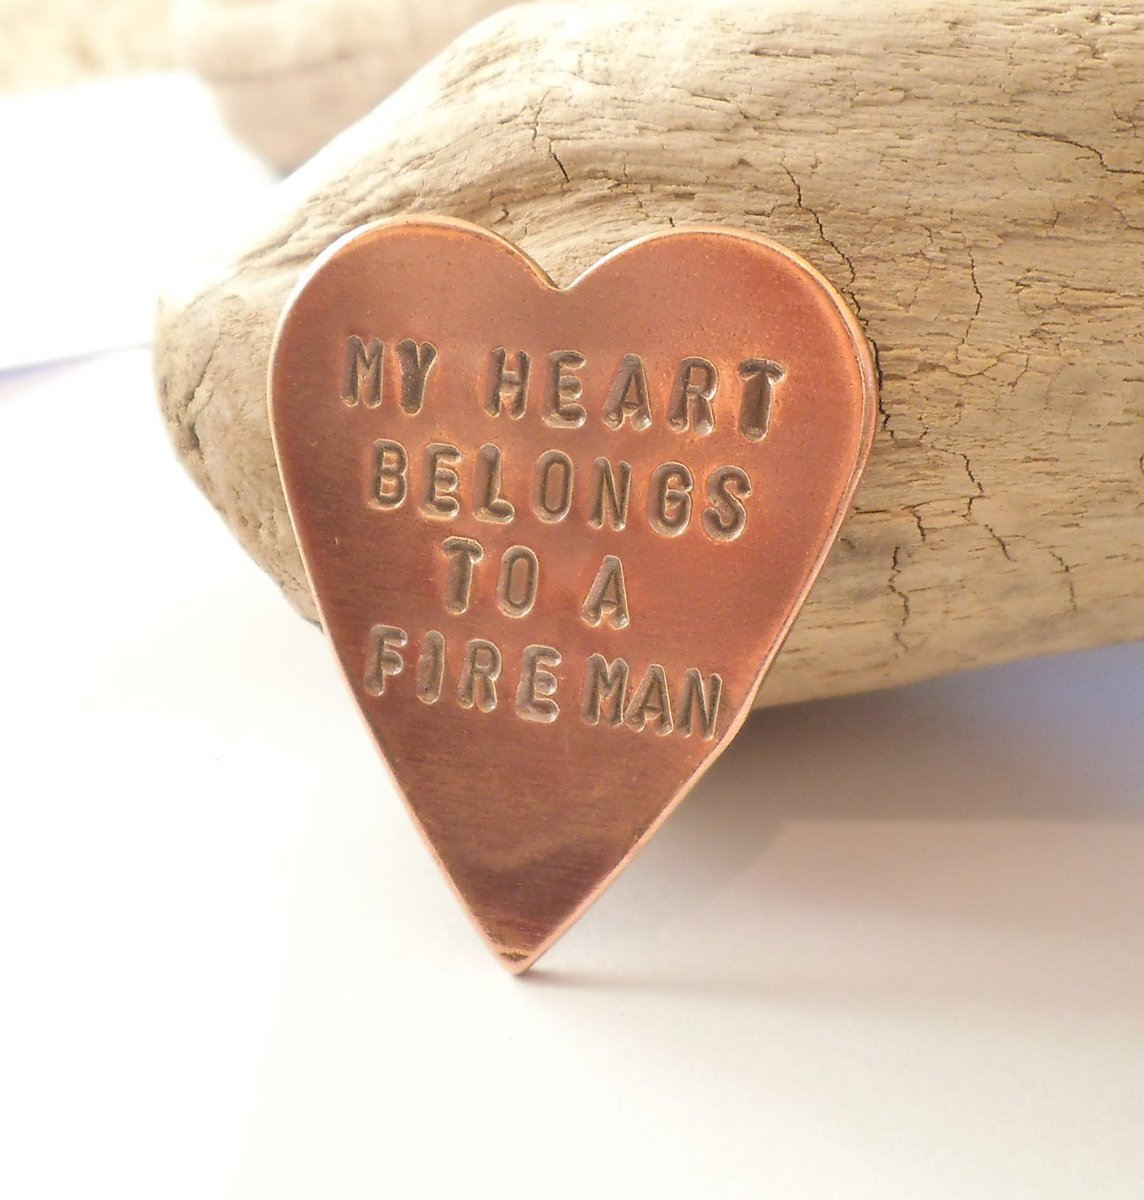 Copper Wallet Insert for Firefighter Daddy My Heart Belongs to a Fireman Husband Fathers Day for Dad Police Officer Gift Marine Deployment http://tuppu.net/1172adce #Shopify #CandTCustomLures #Memorial_gift